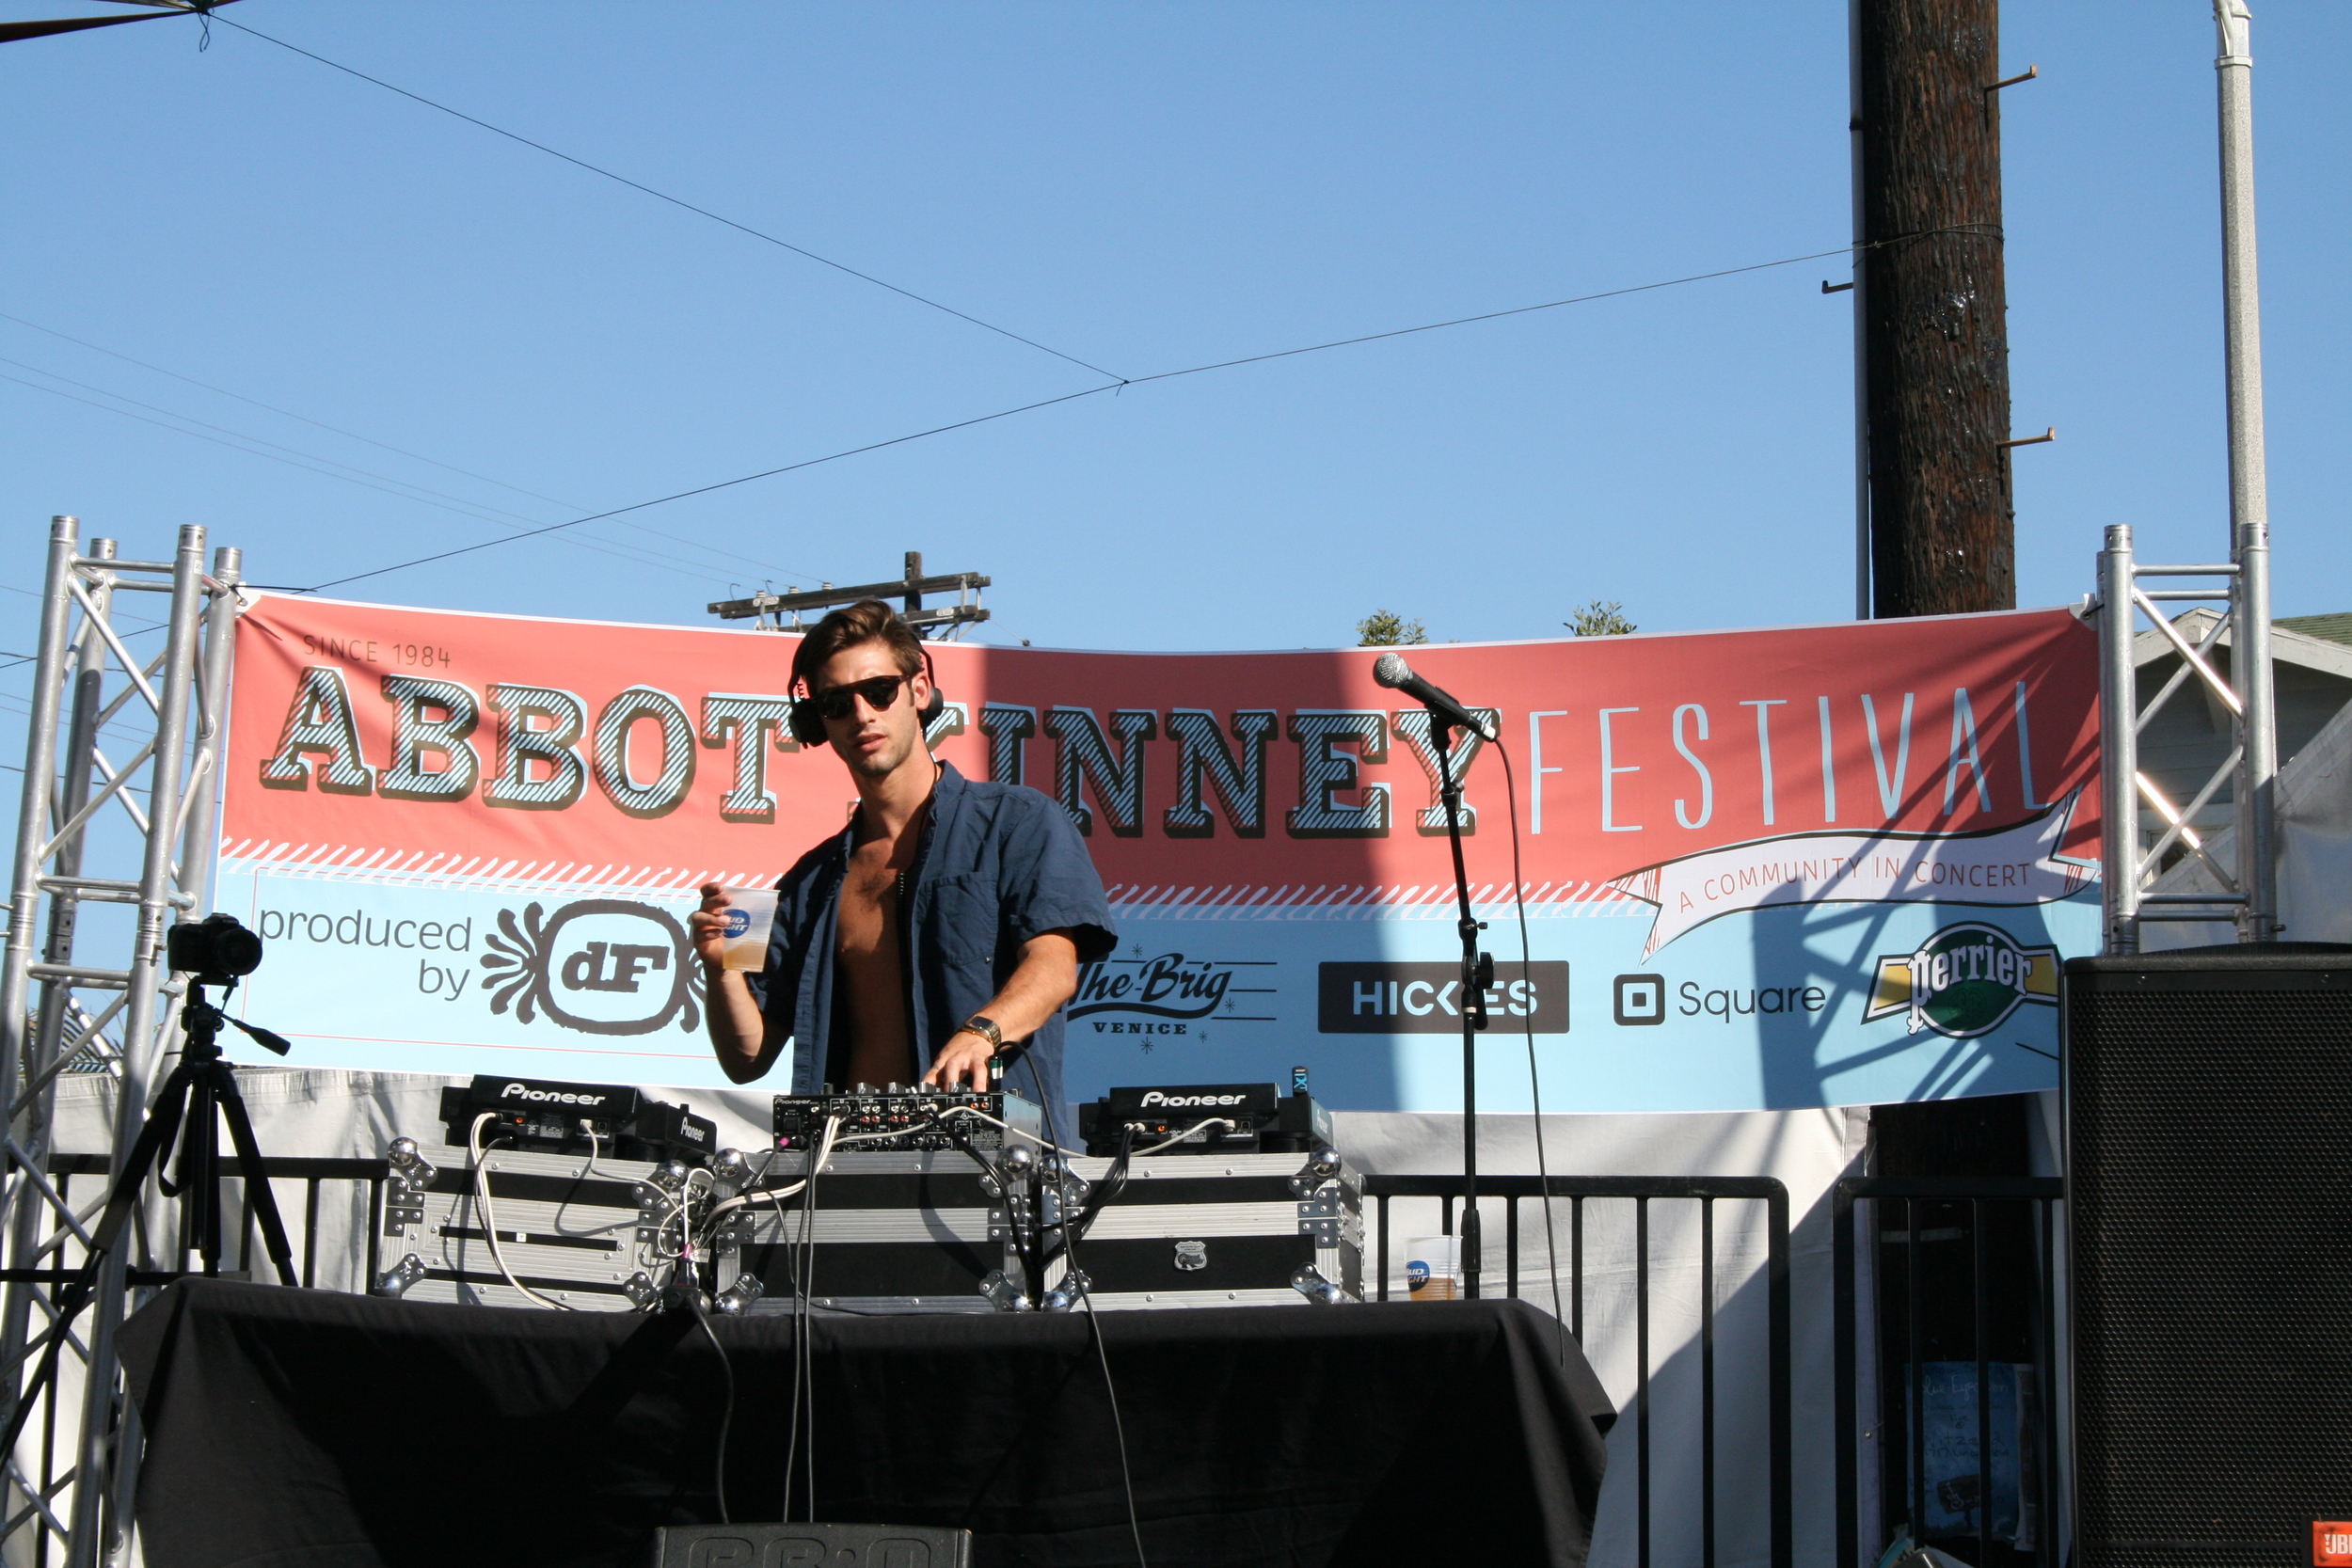 Abbot Kinney Festival DJ. (Photo by Kathy Urso)